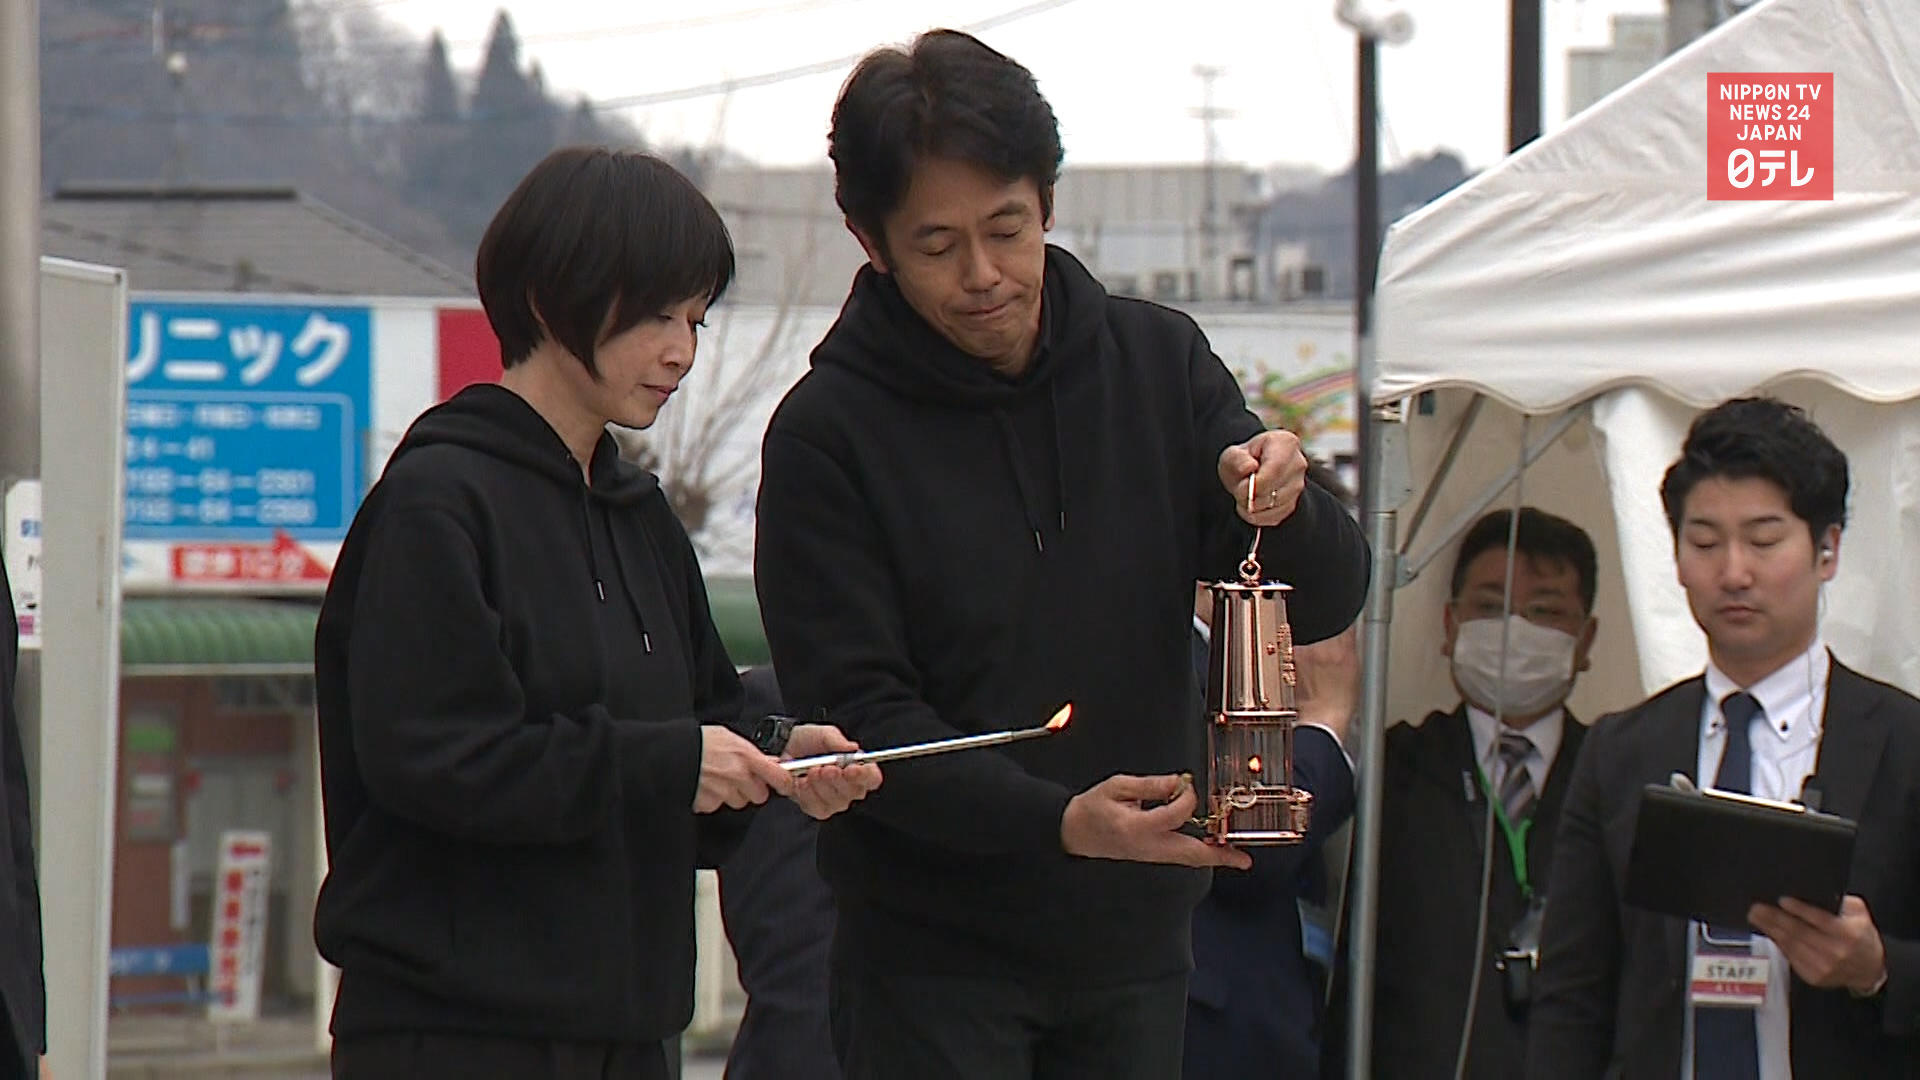 Japan to scale down Olympic torch relay to lantern tour